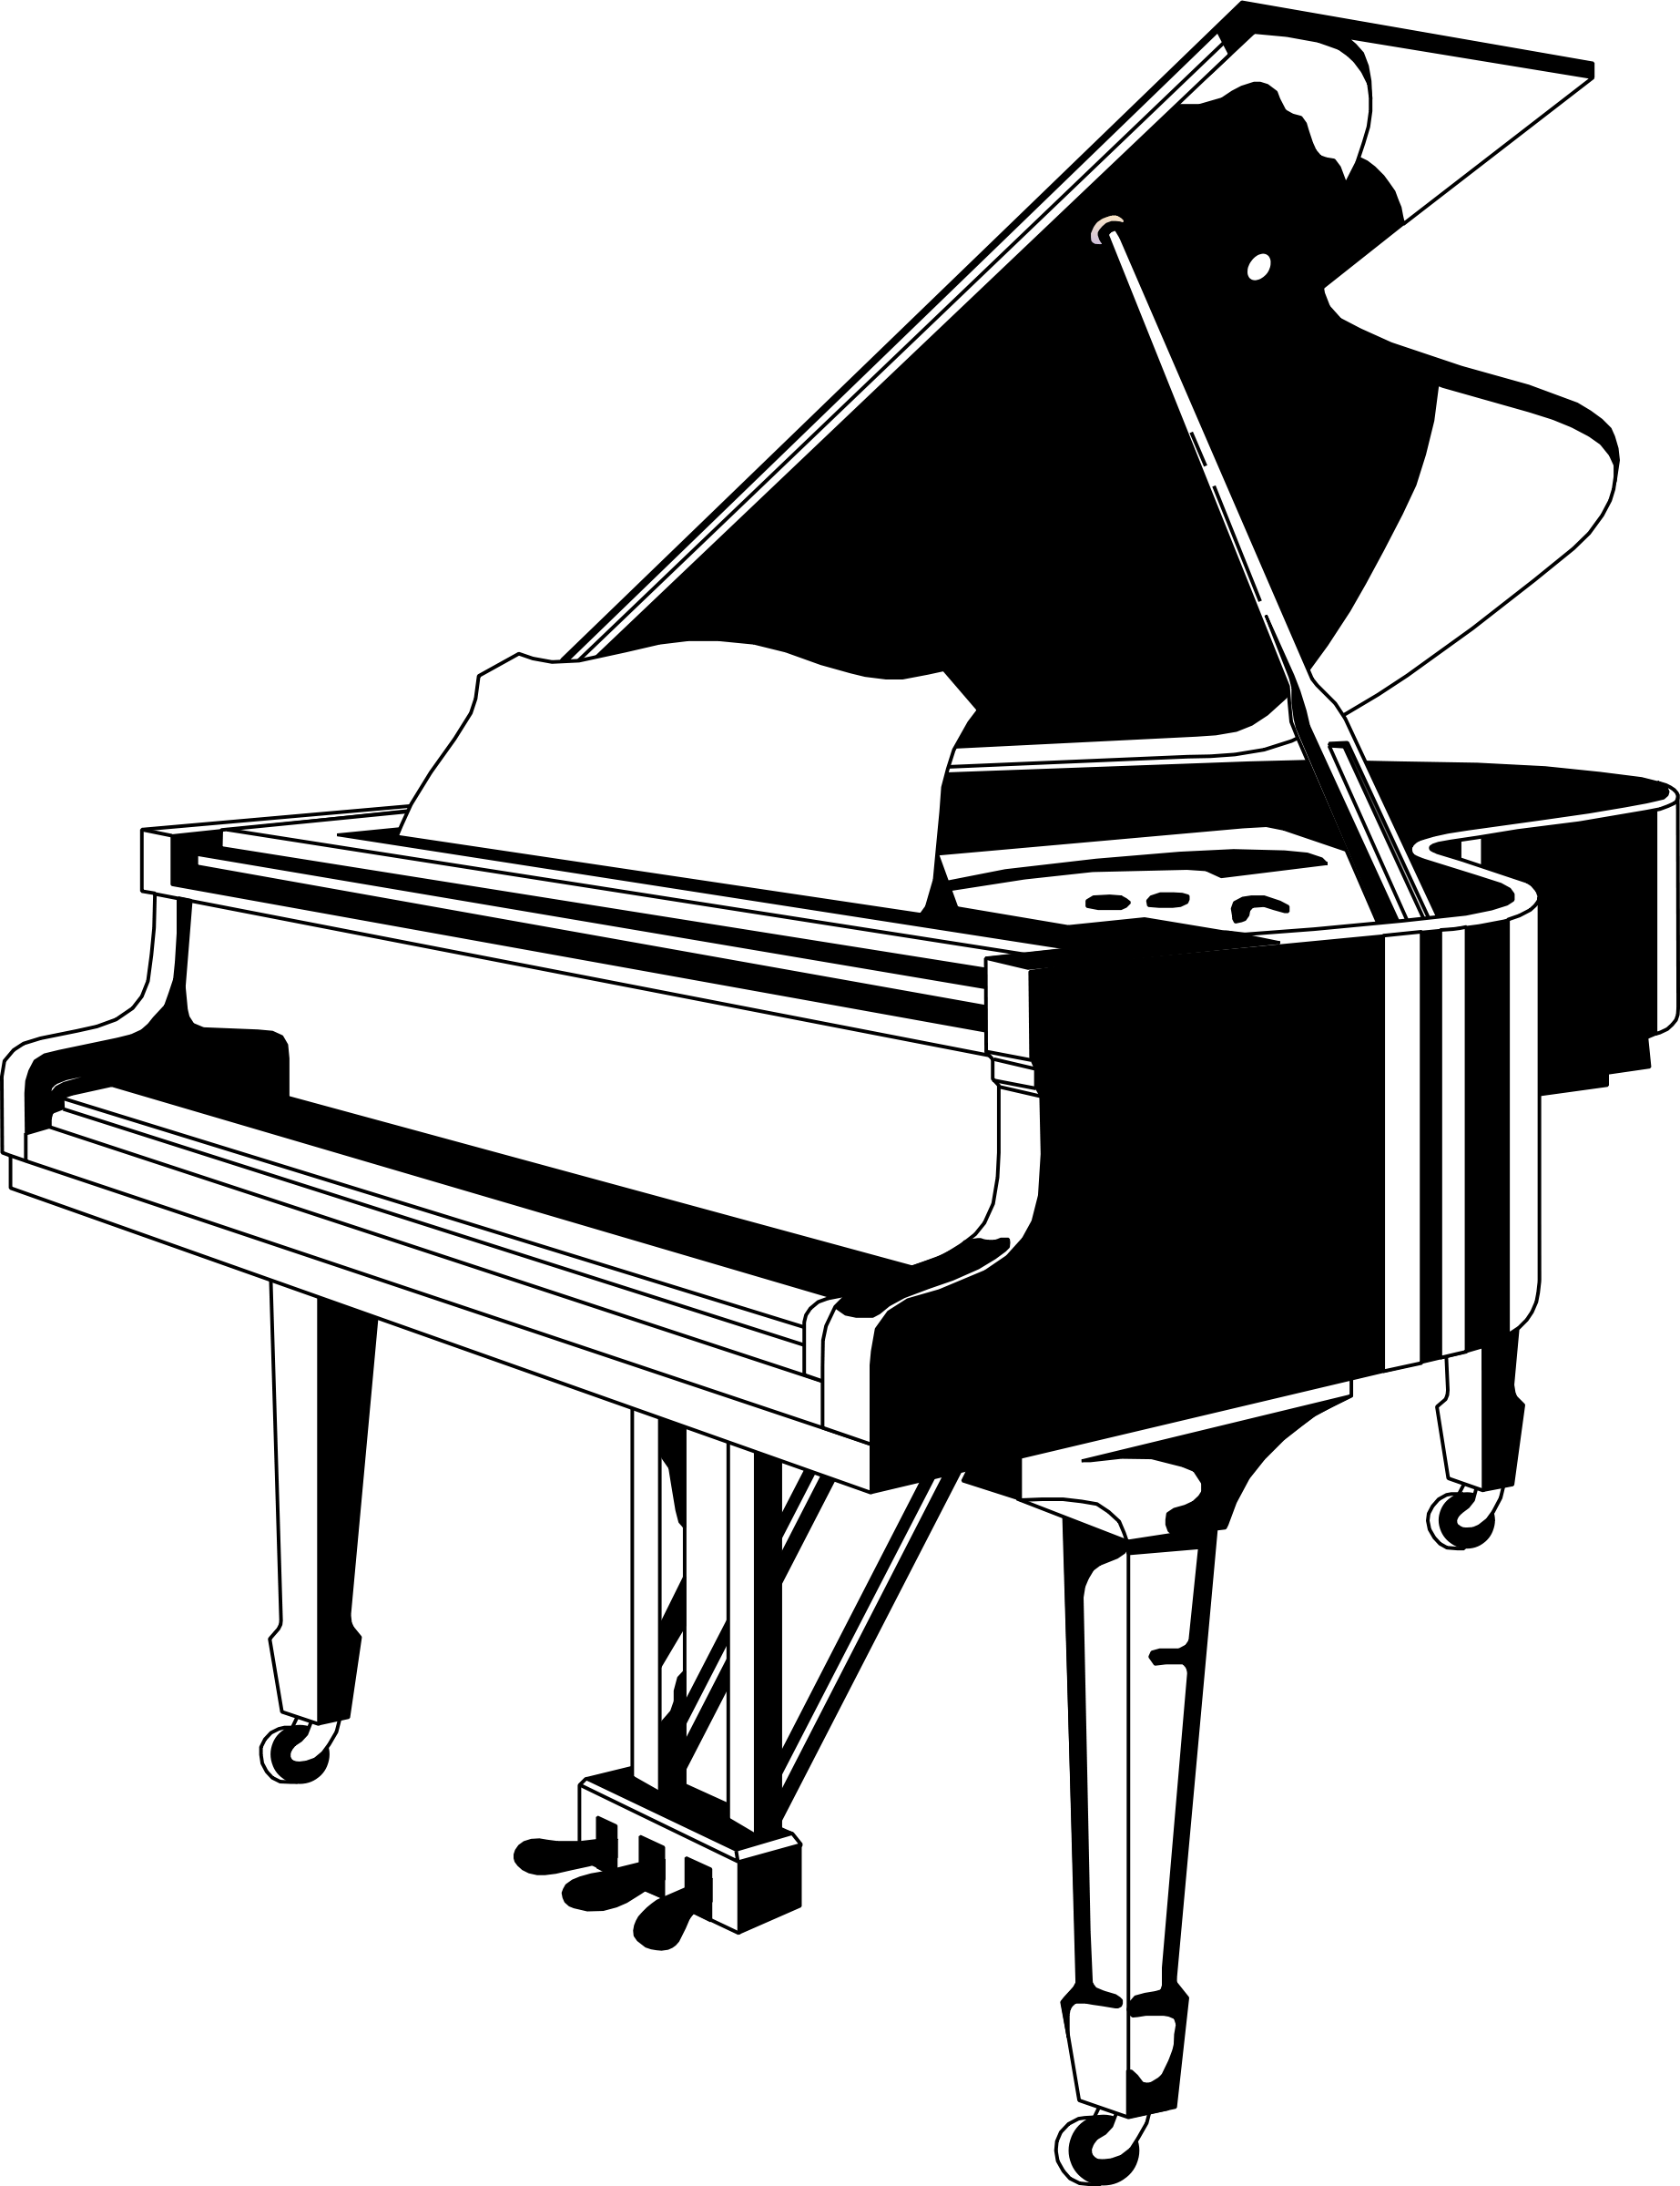 Piano svg black and white. Clipart free stock download